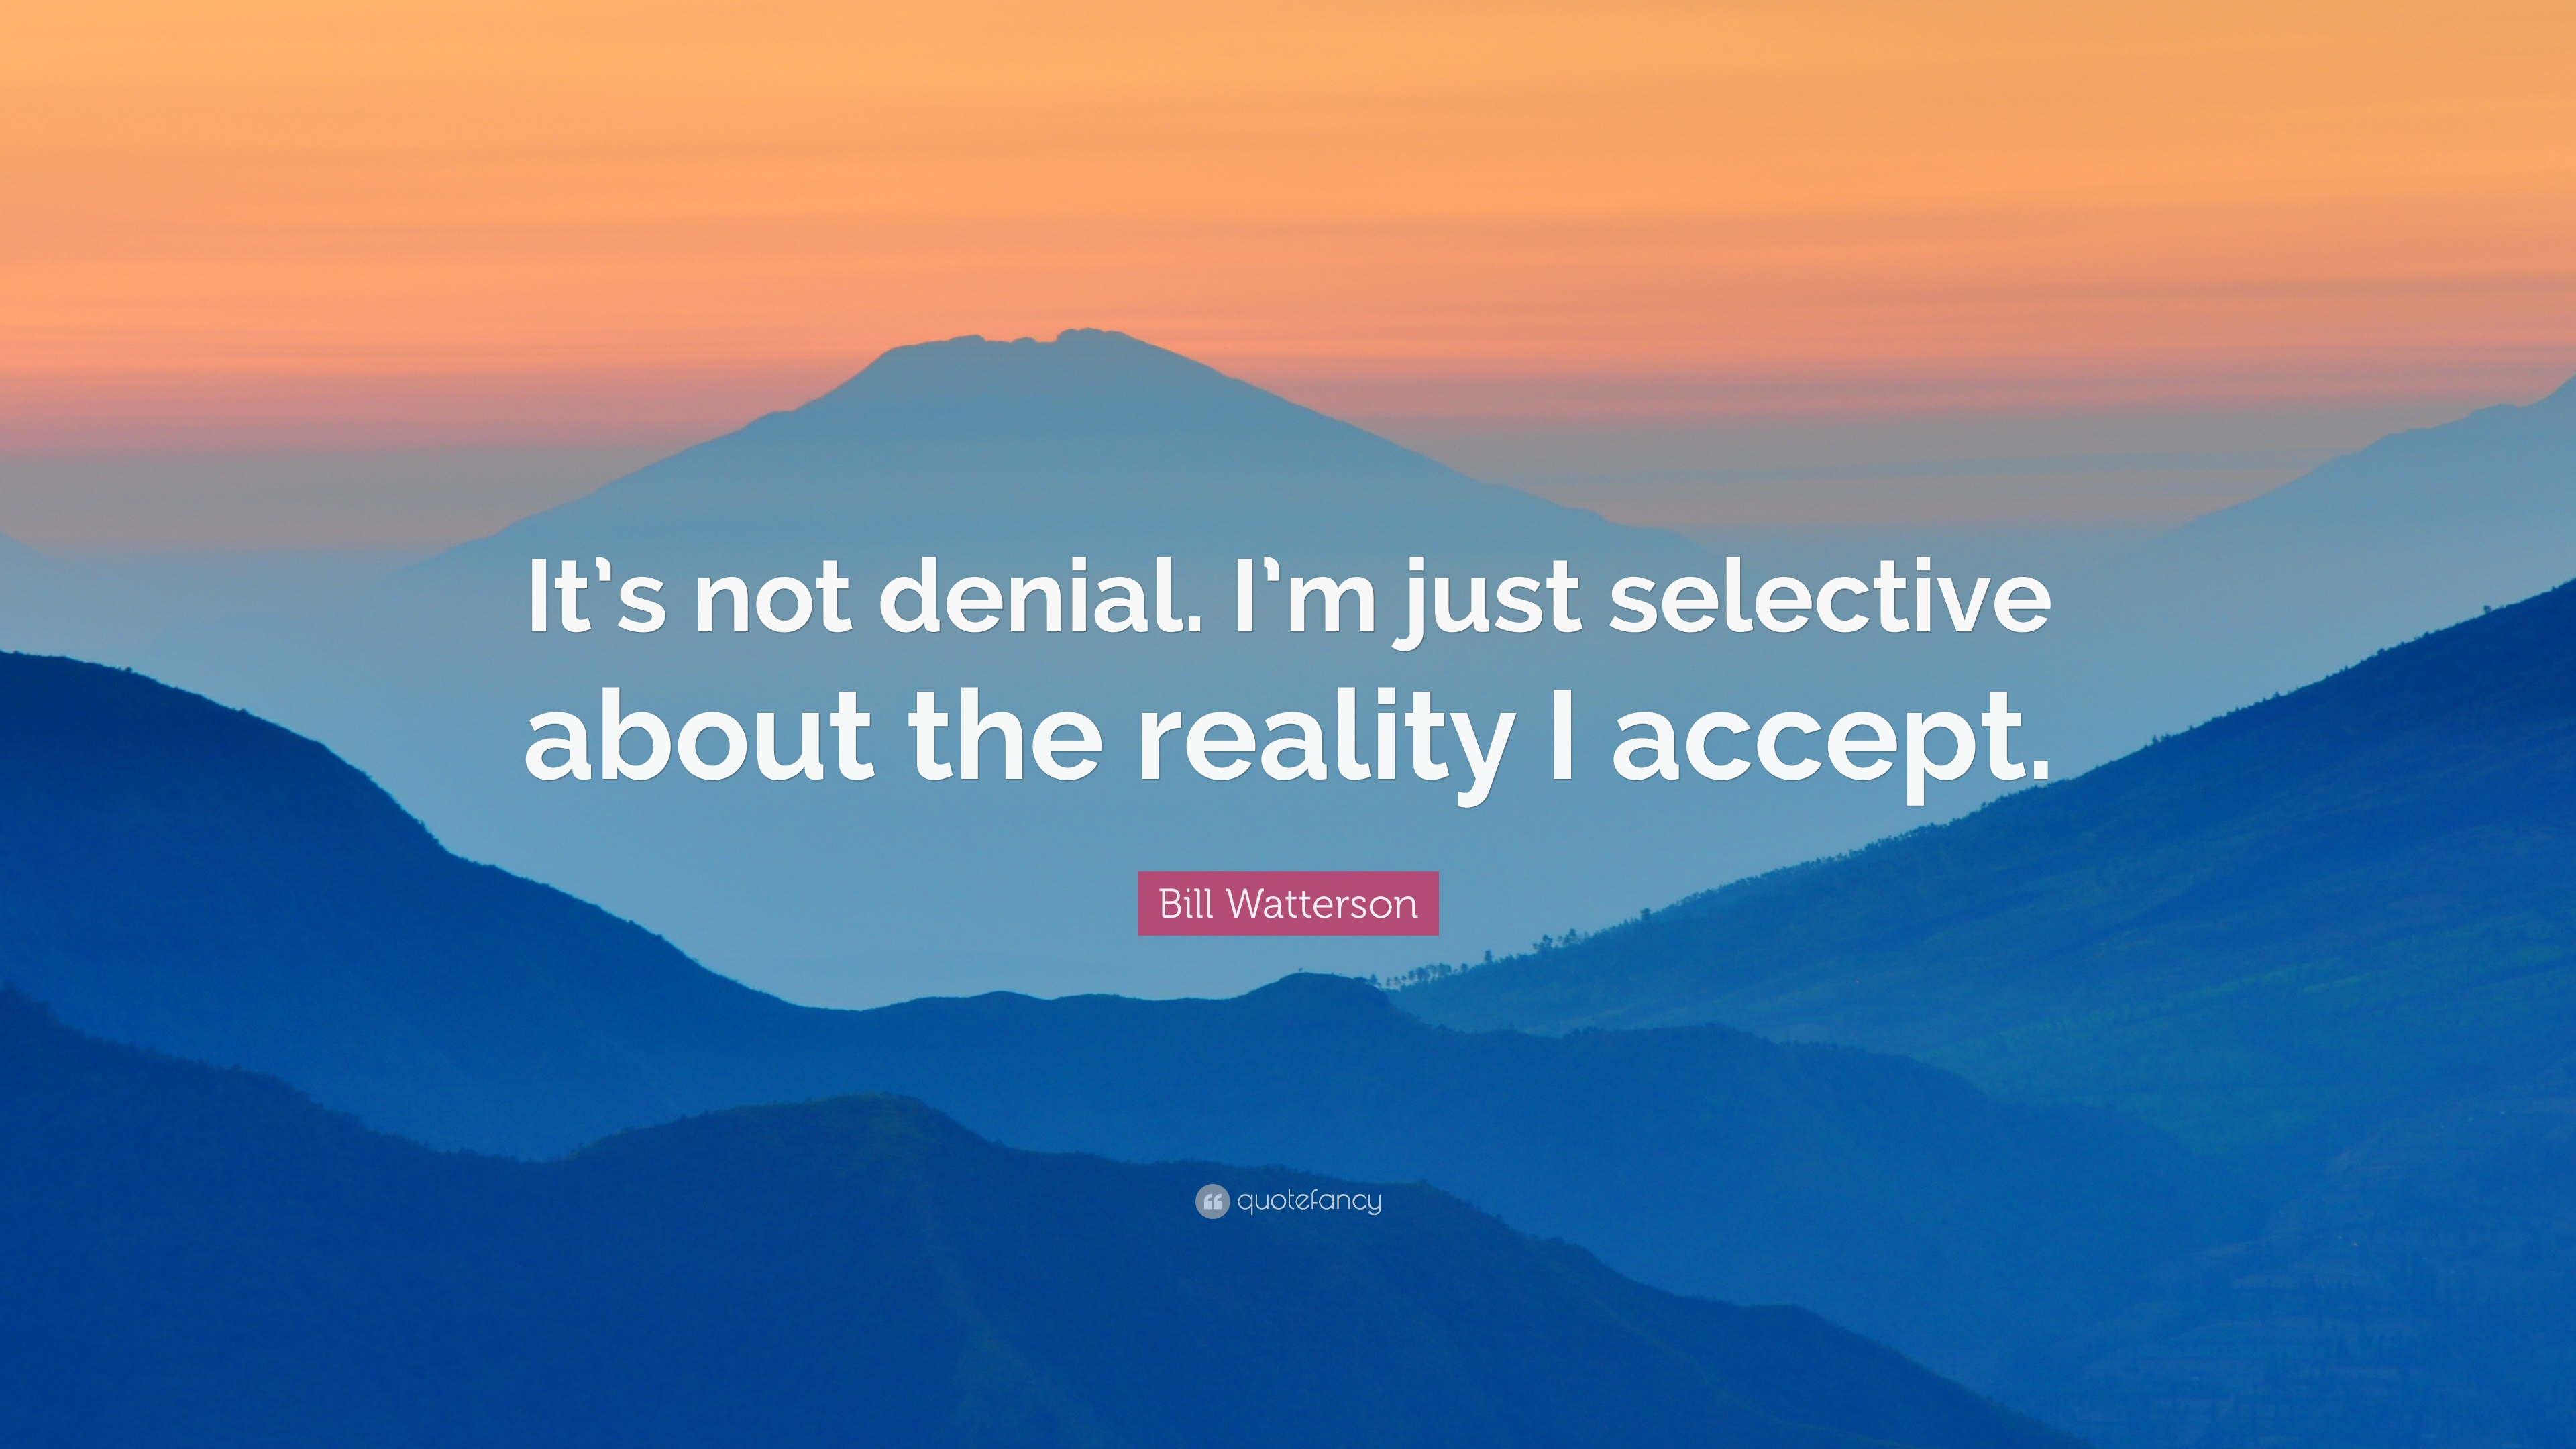 Image result for it's not denial i'm just selective bill watterson